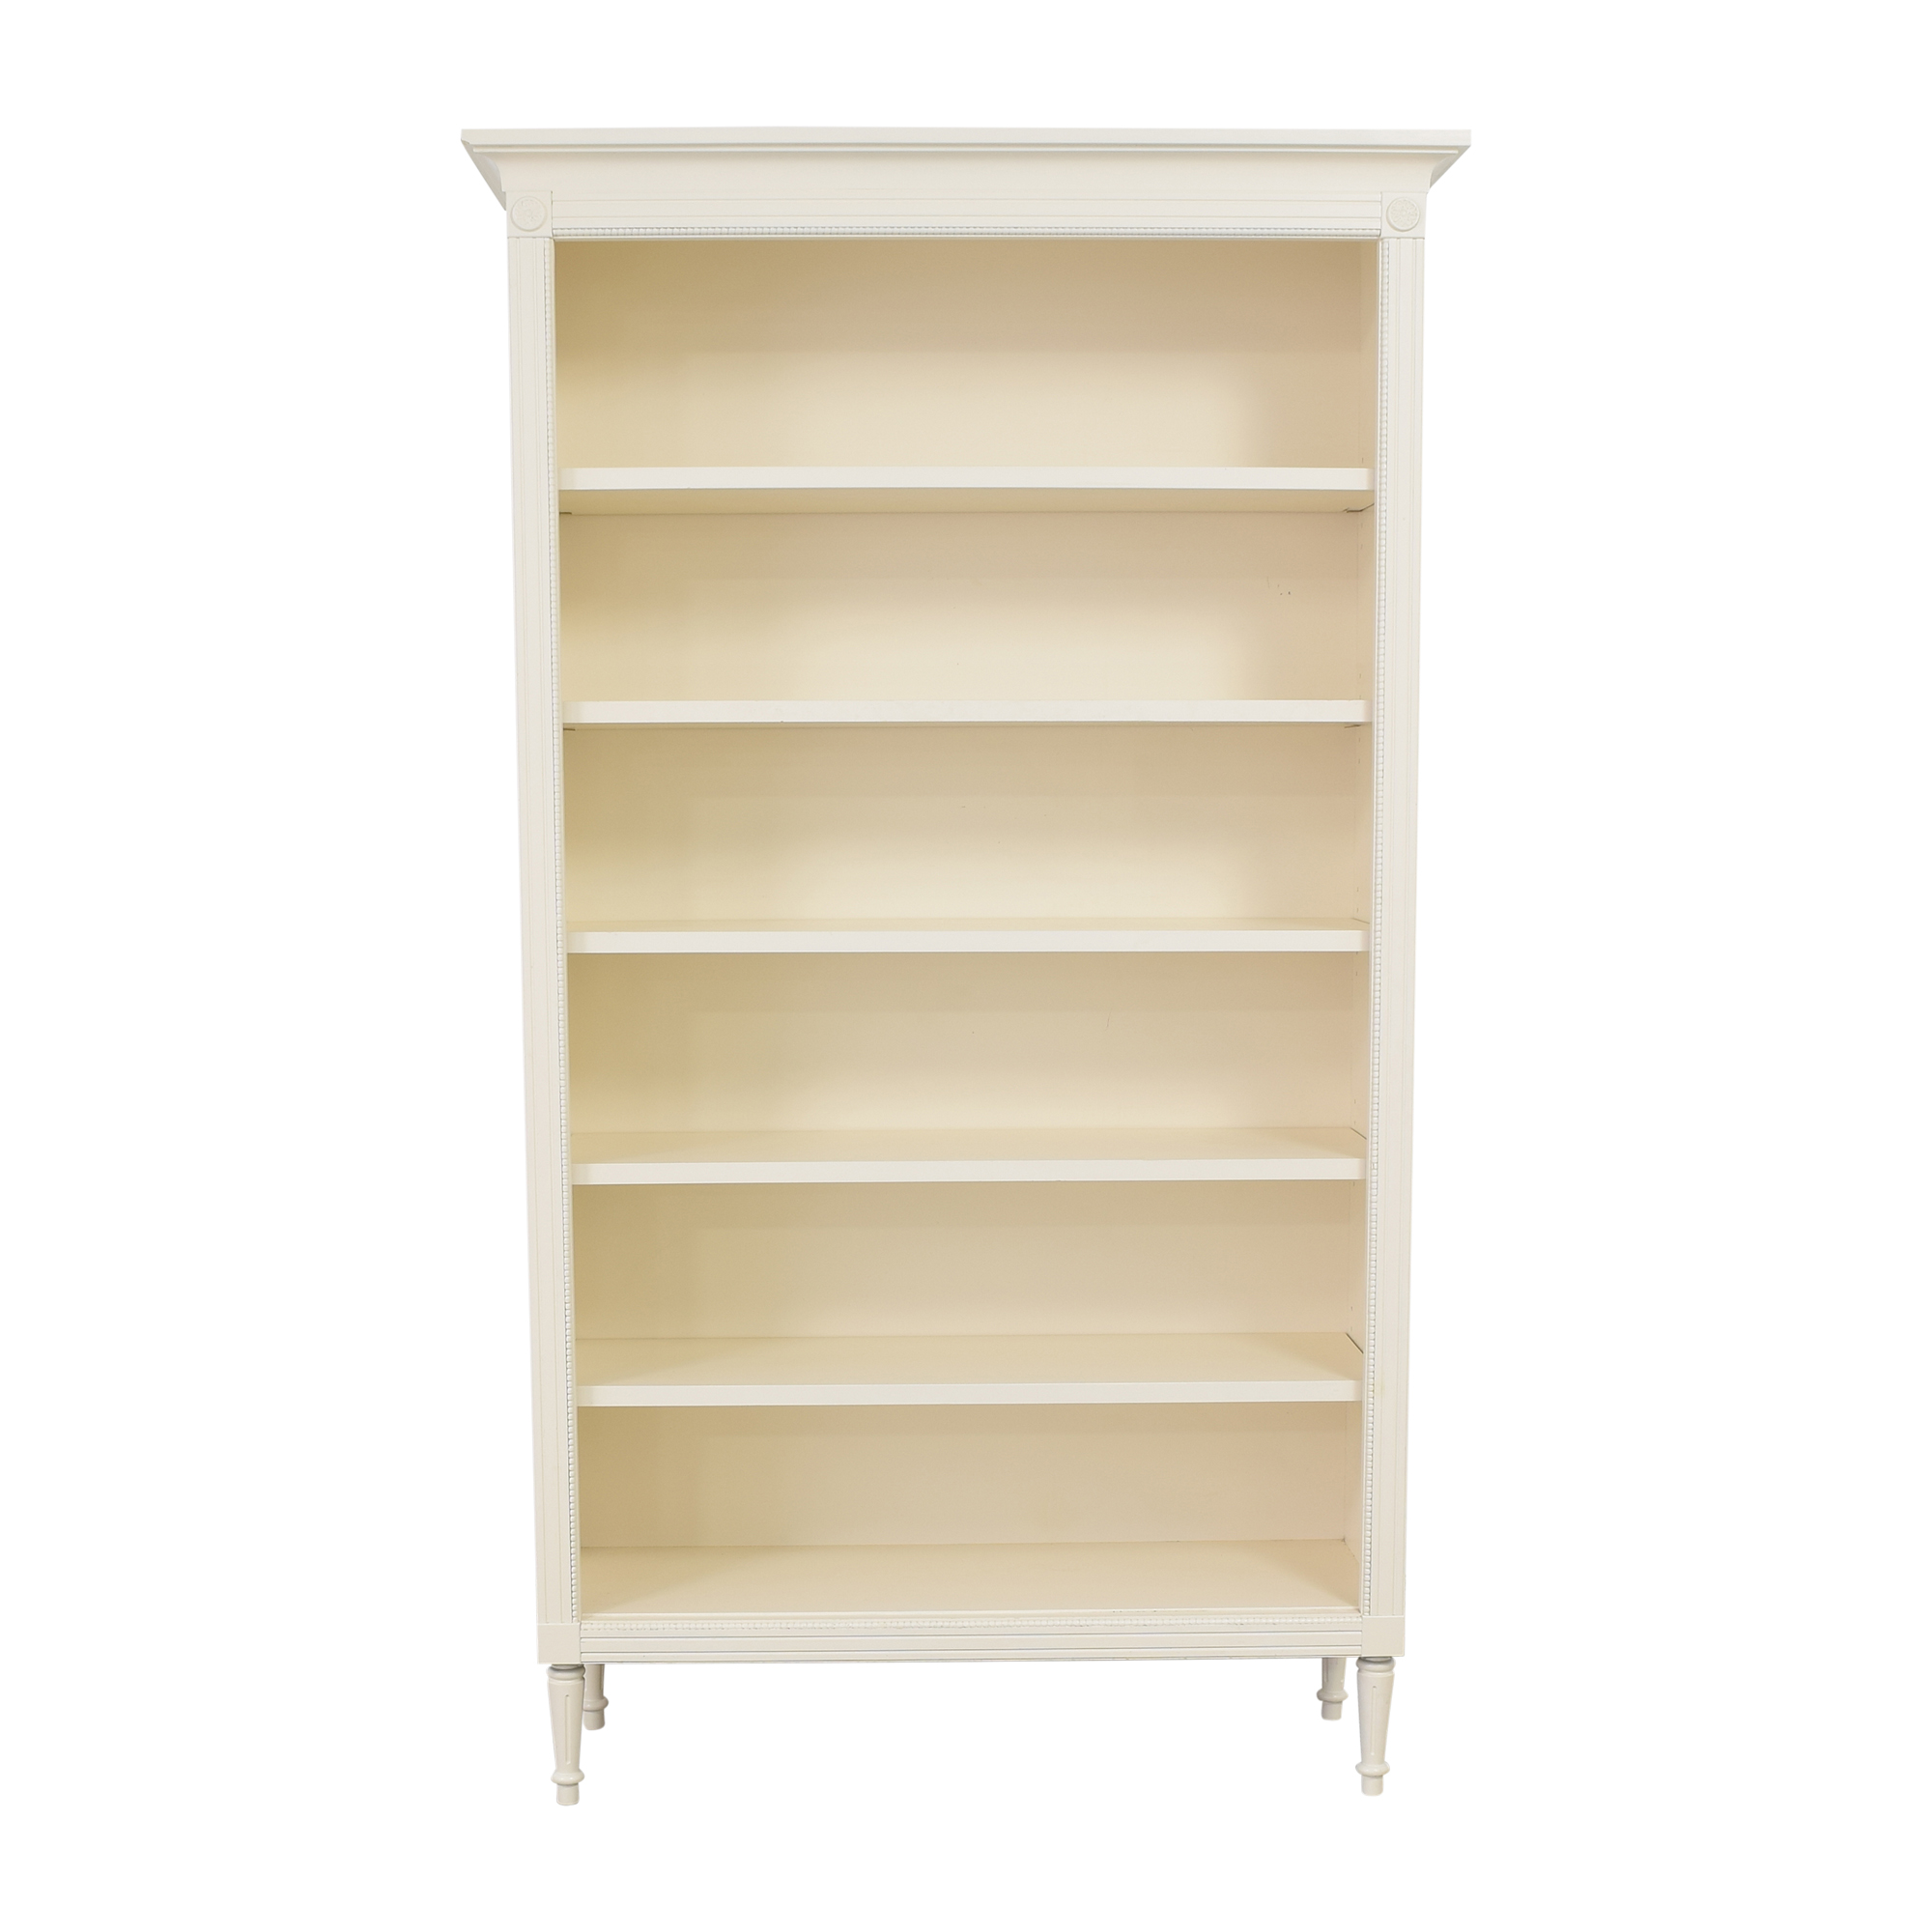 Classic-Style Bookcase second hand